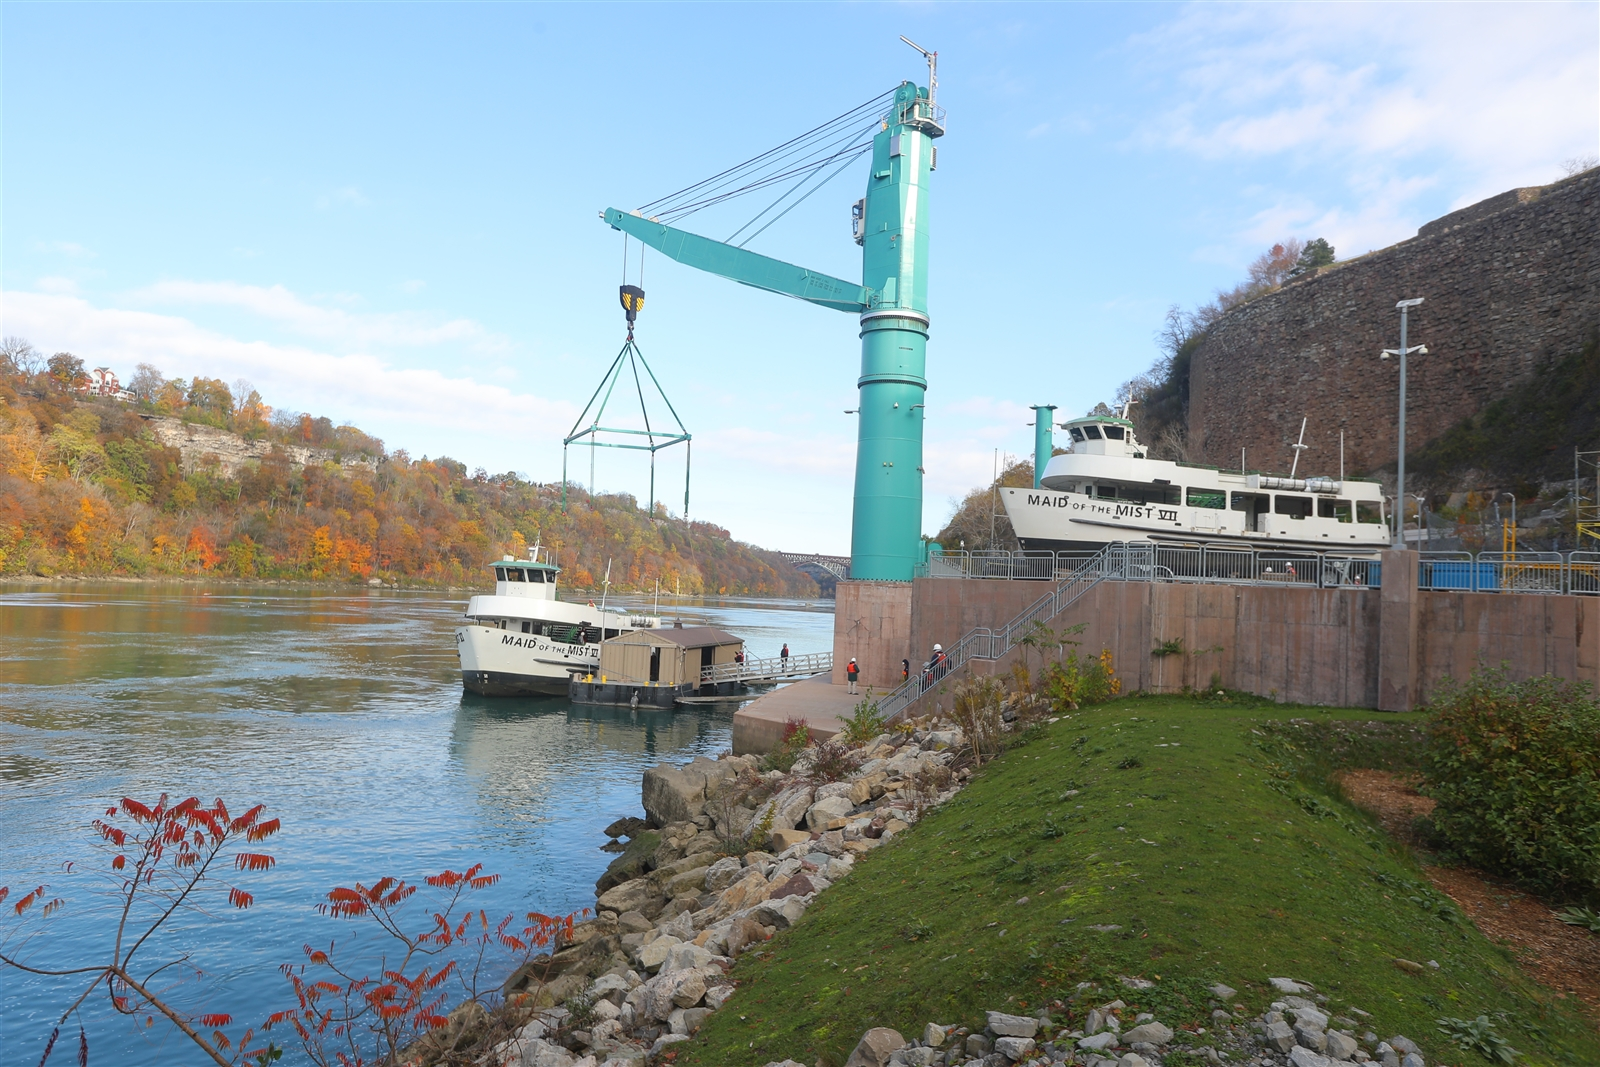 Maid of the Mist VII and VI are lifted out of the water and put in dry dock along the lower Niagara River in Niagara Falls on Wednesday, Nov. 8, 2017.